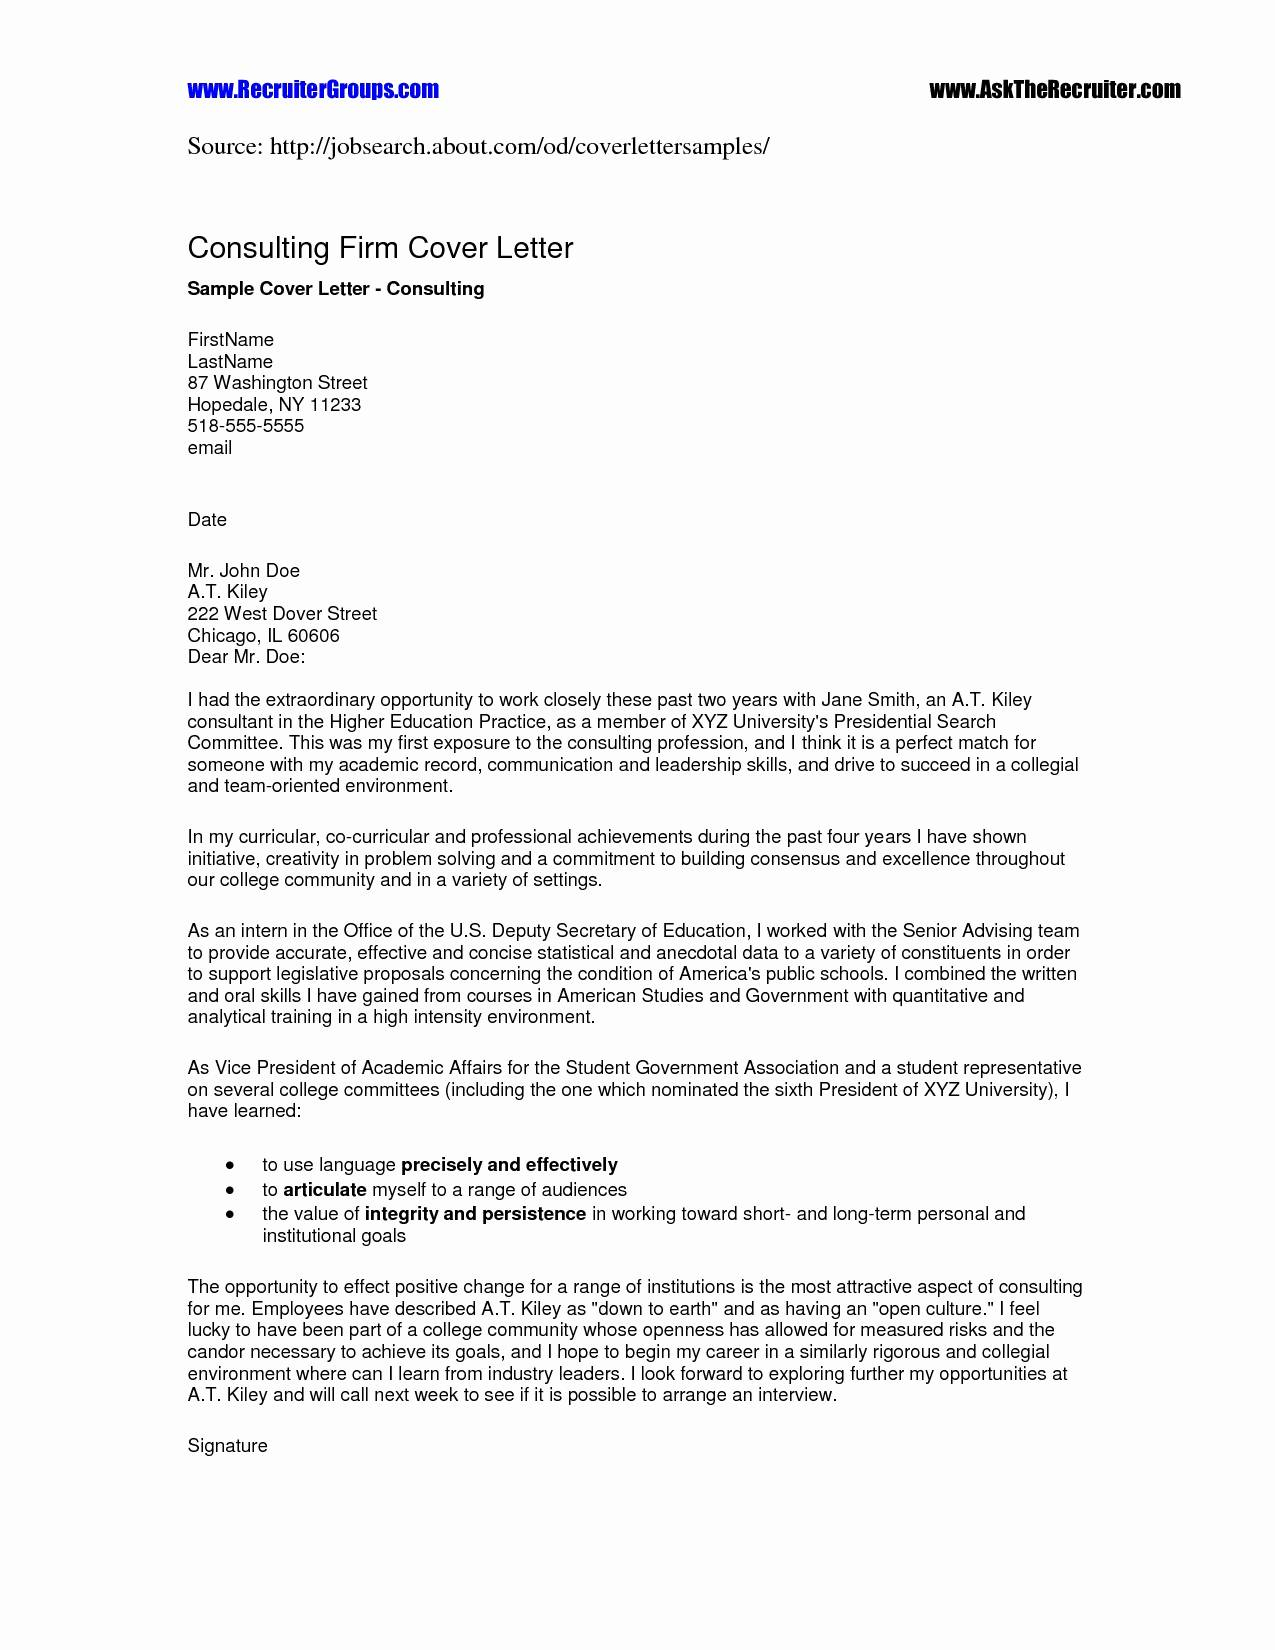 Engineering Covering Letter Template - Engineering Covering Letter Fresh Sample Consulting Cover Letter